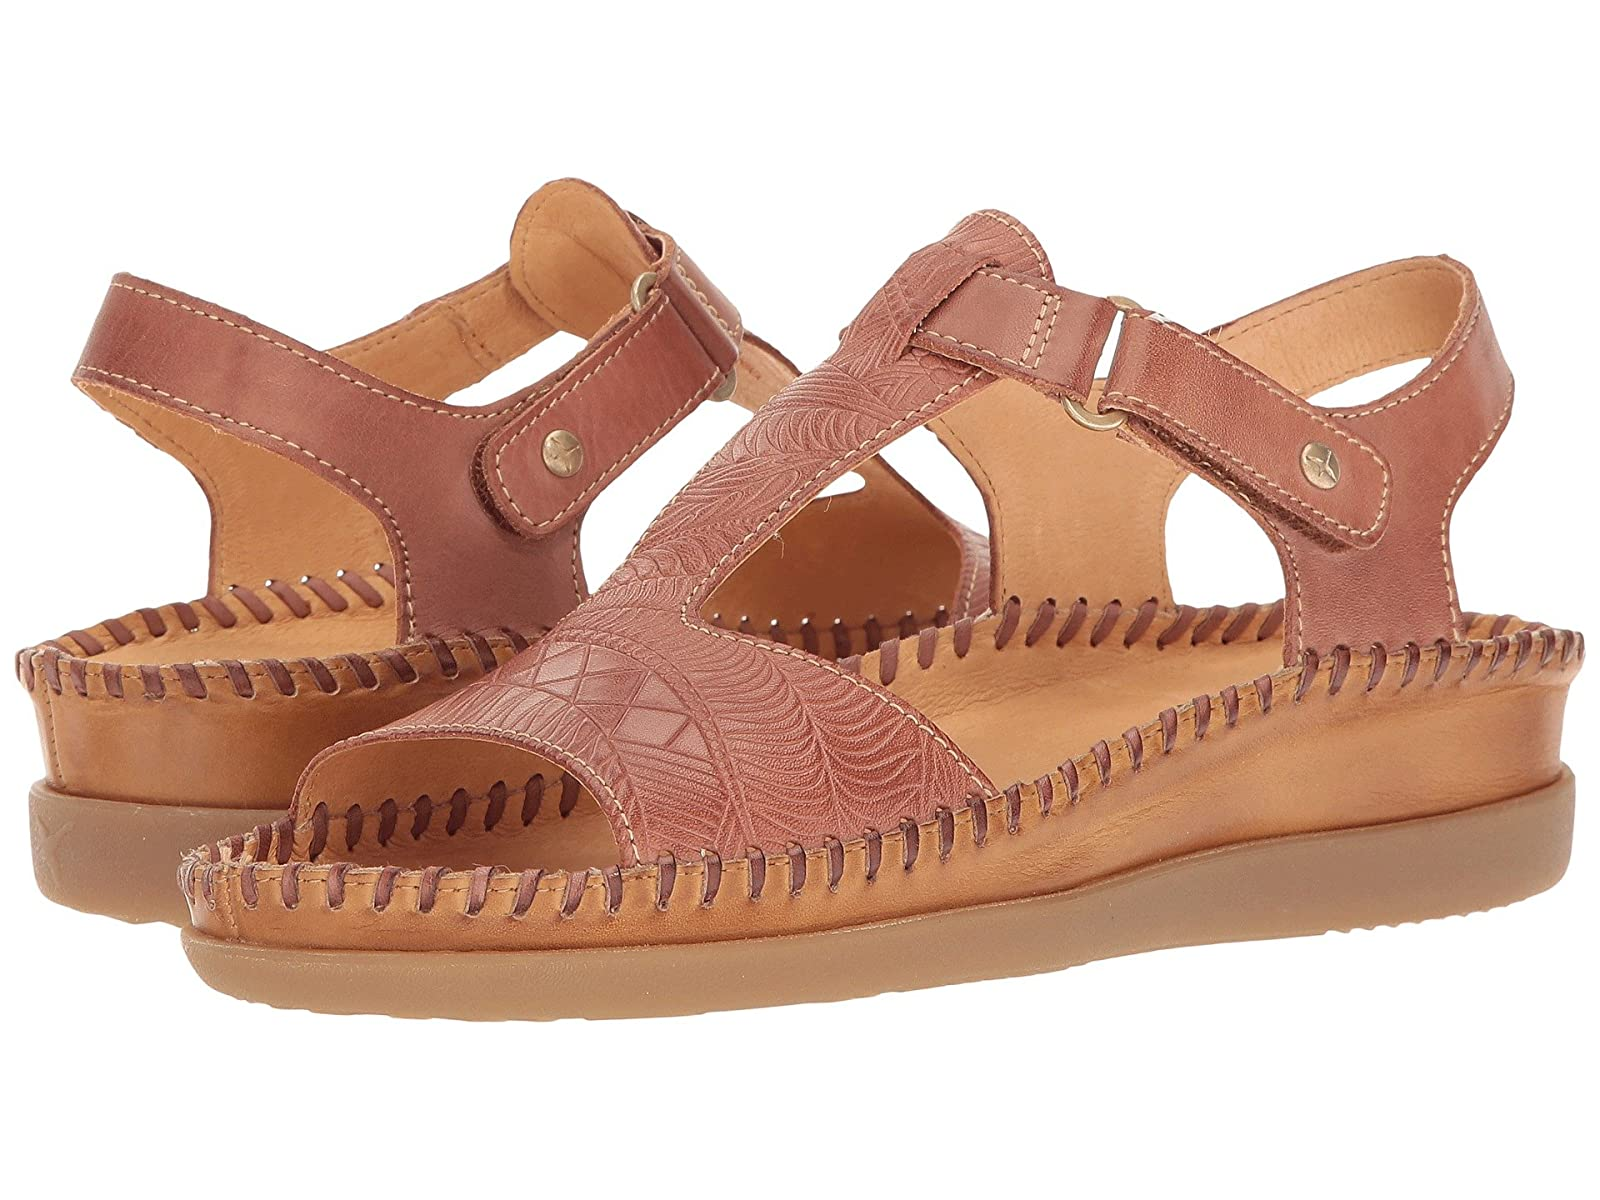 Pikolinos Cadaques W8K-0829Cheap and distinctive eye-catching shoes